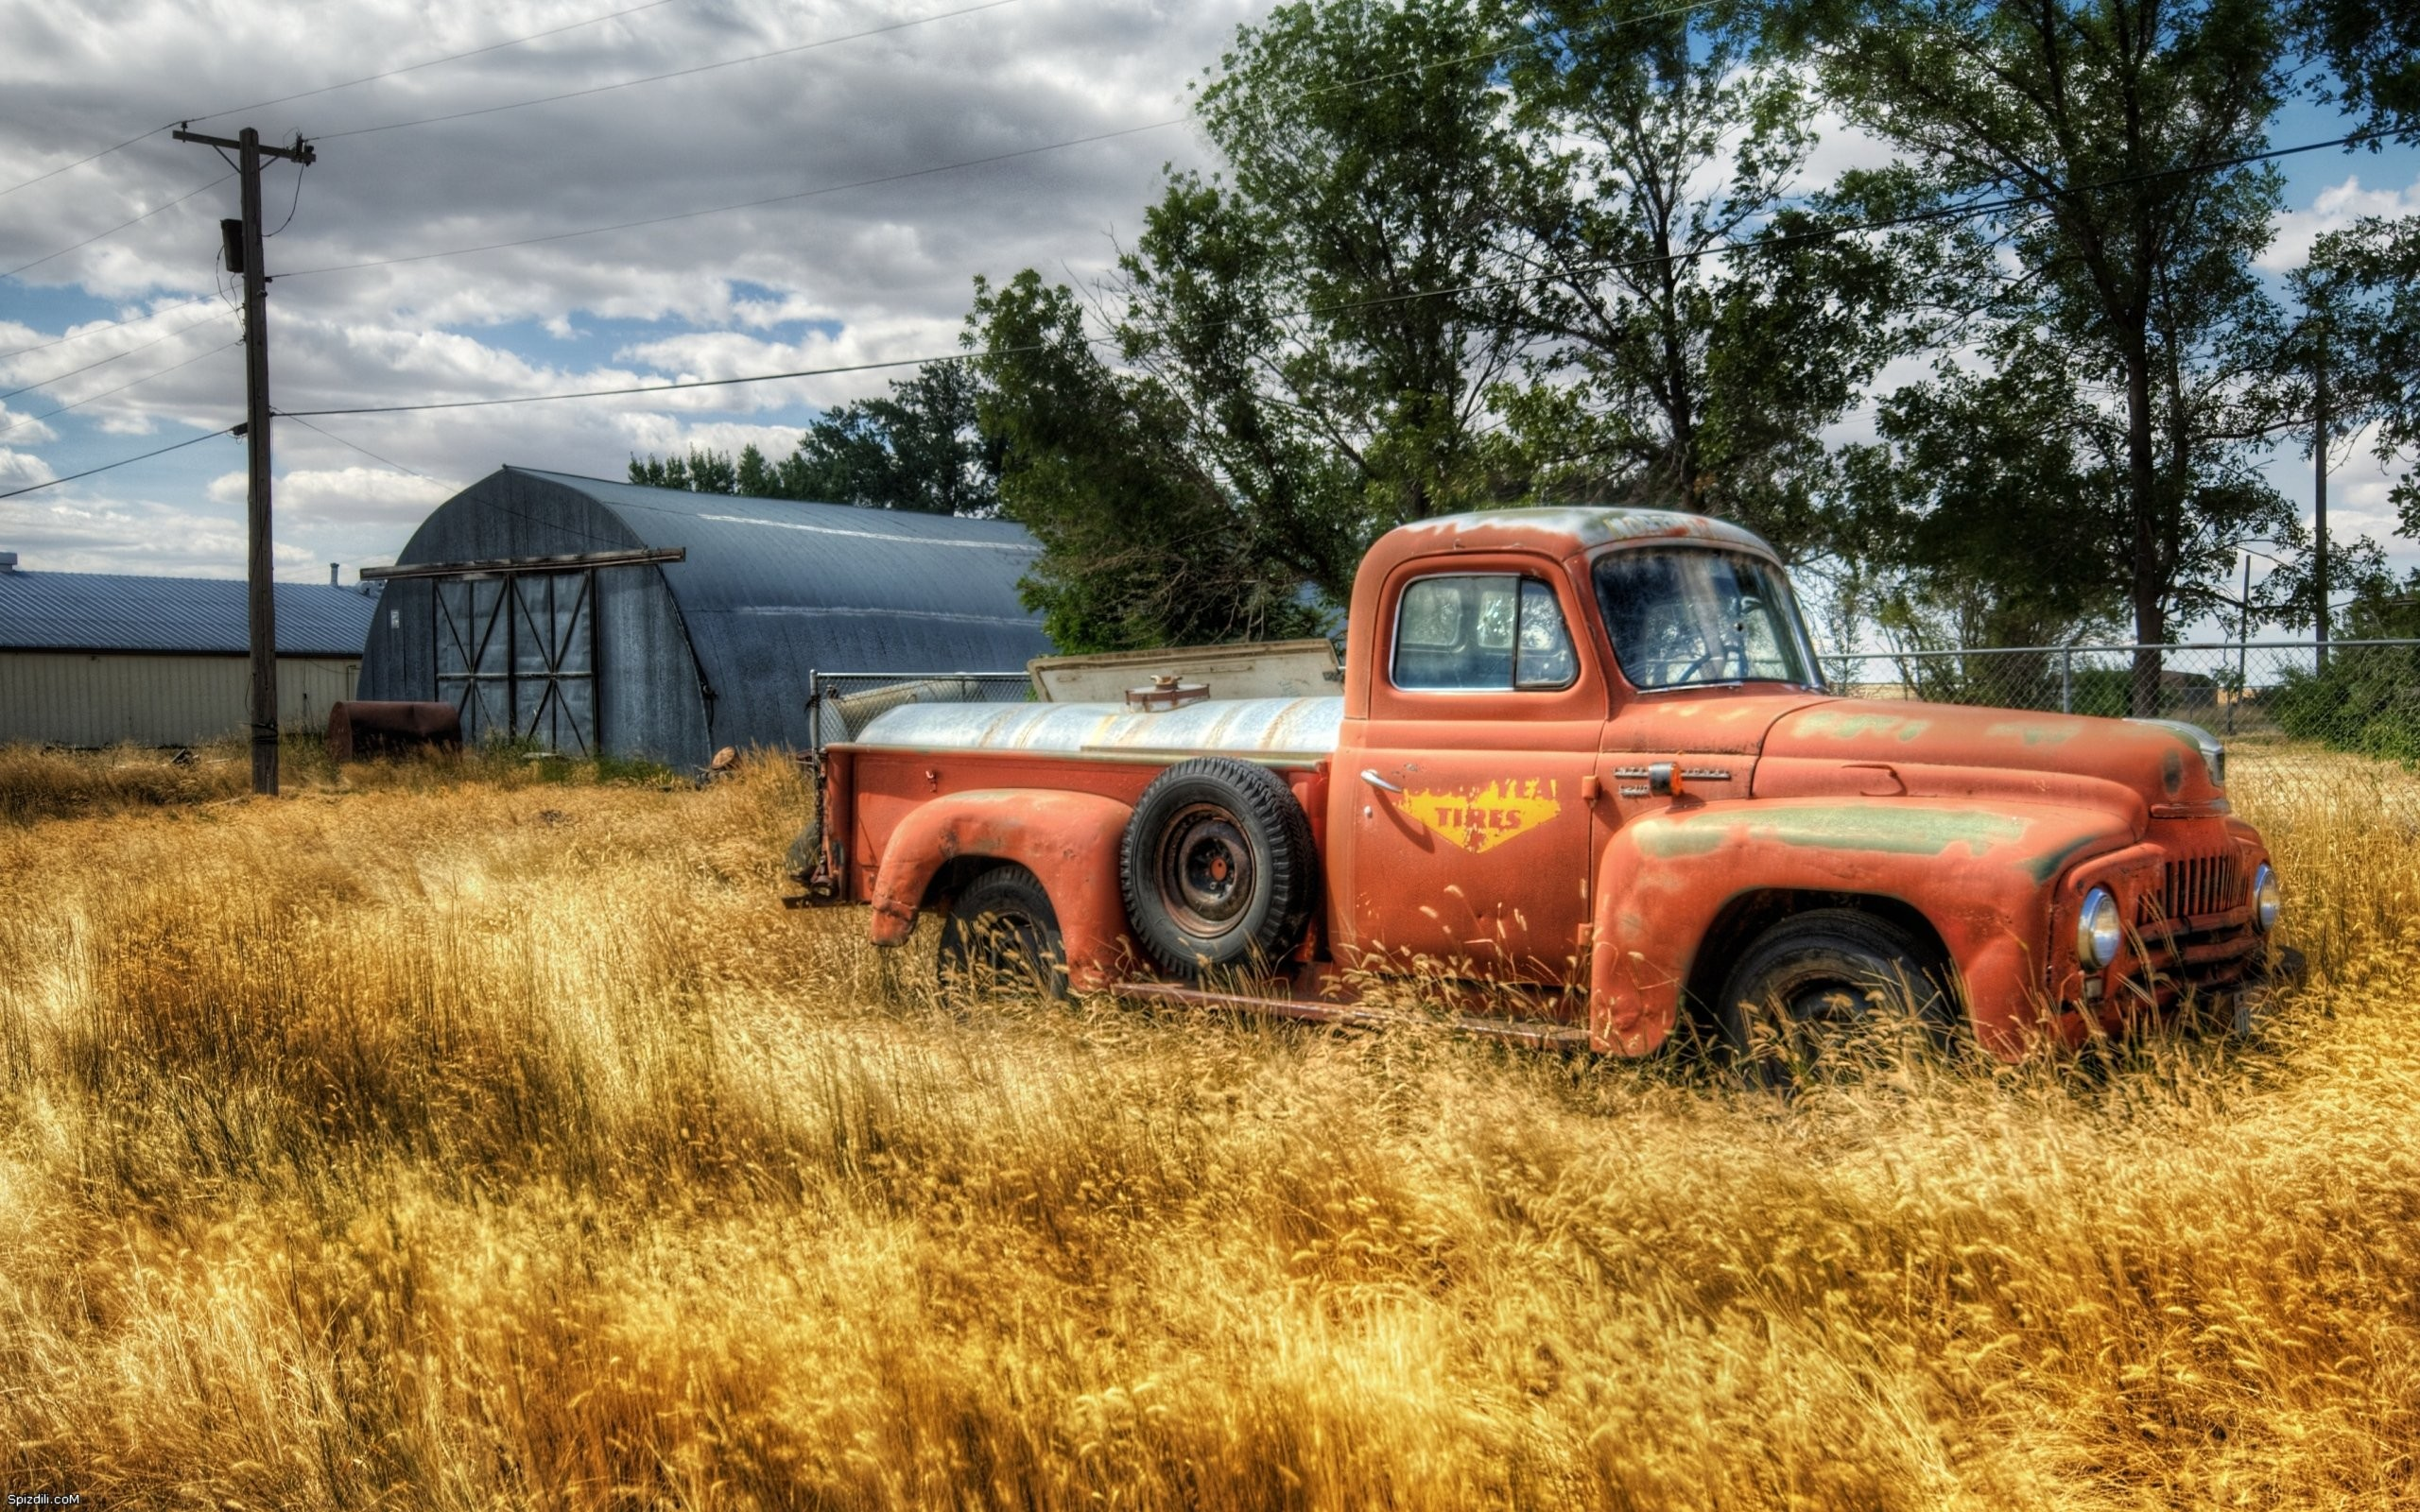 Trucks rust vehicles hdr photography classic cars wallpaper background 2560x1600